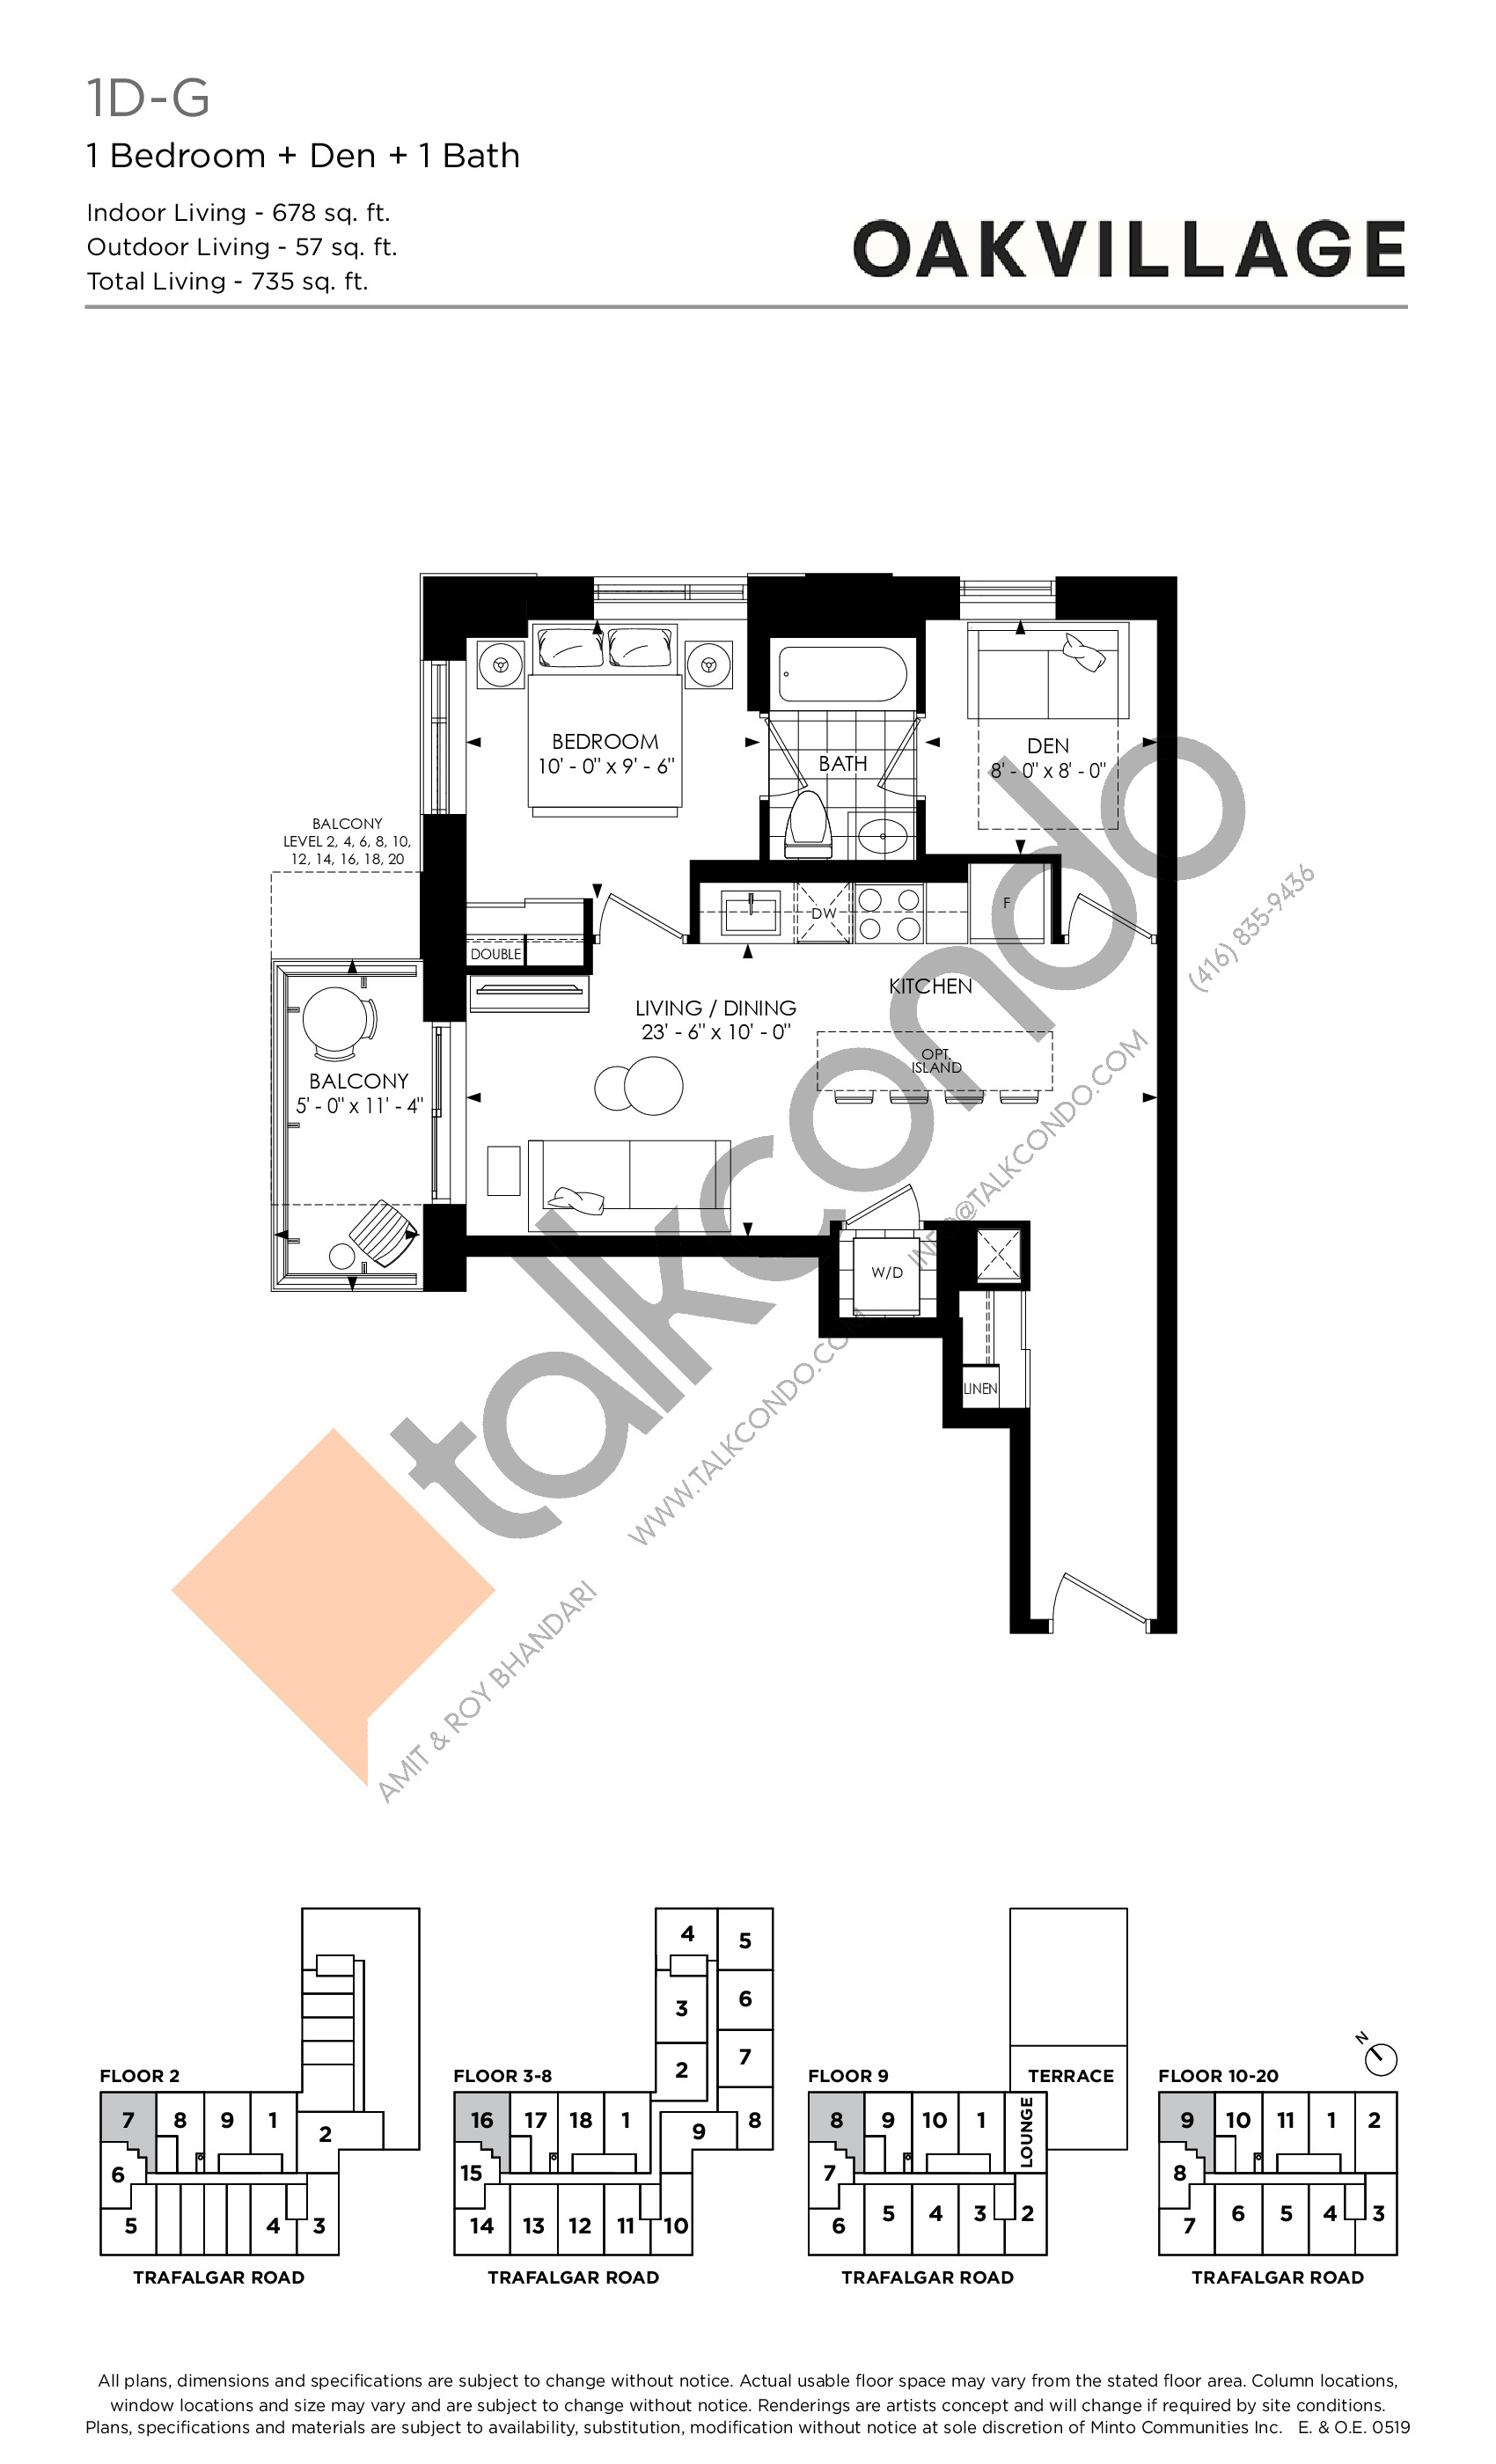 1D-G (Tower) Floor Plan at Oakvillage Phase 2 - 678 sq.ft